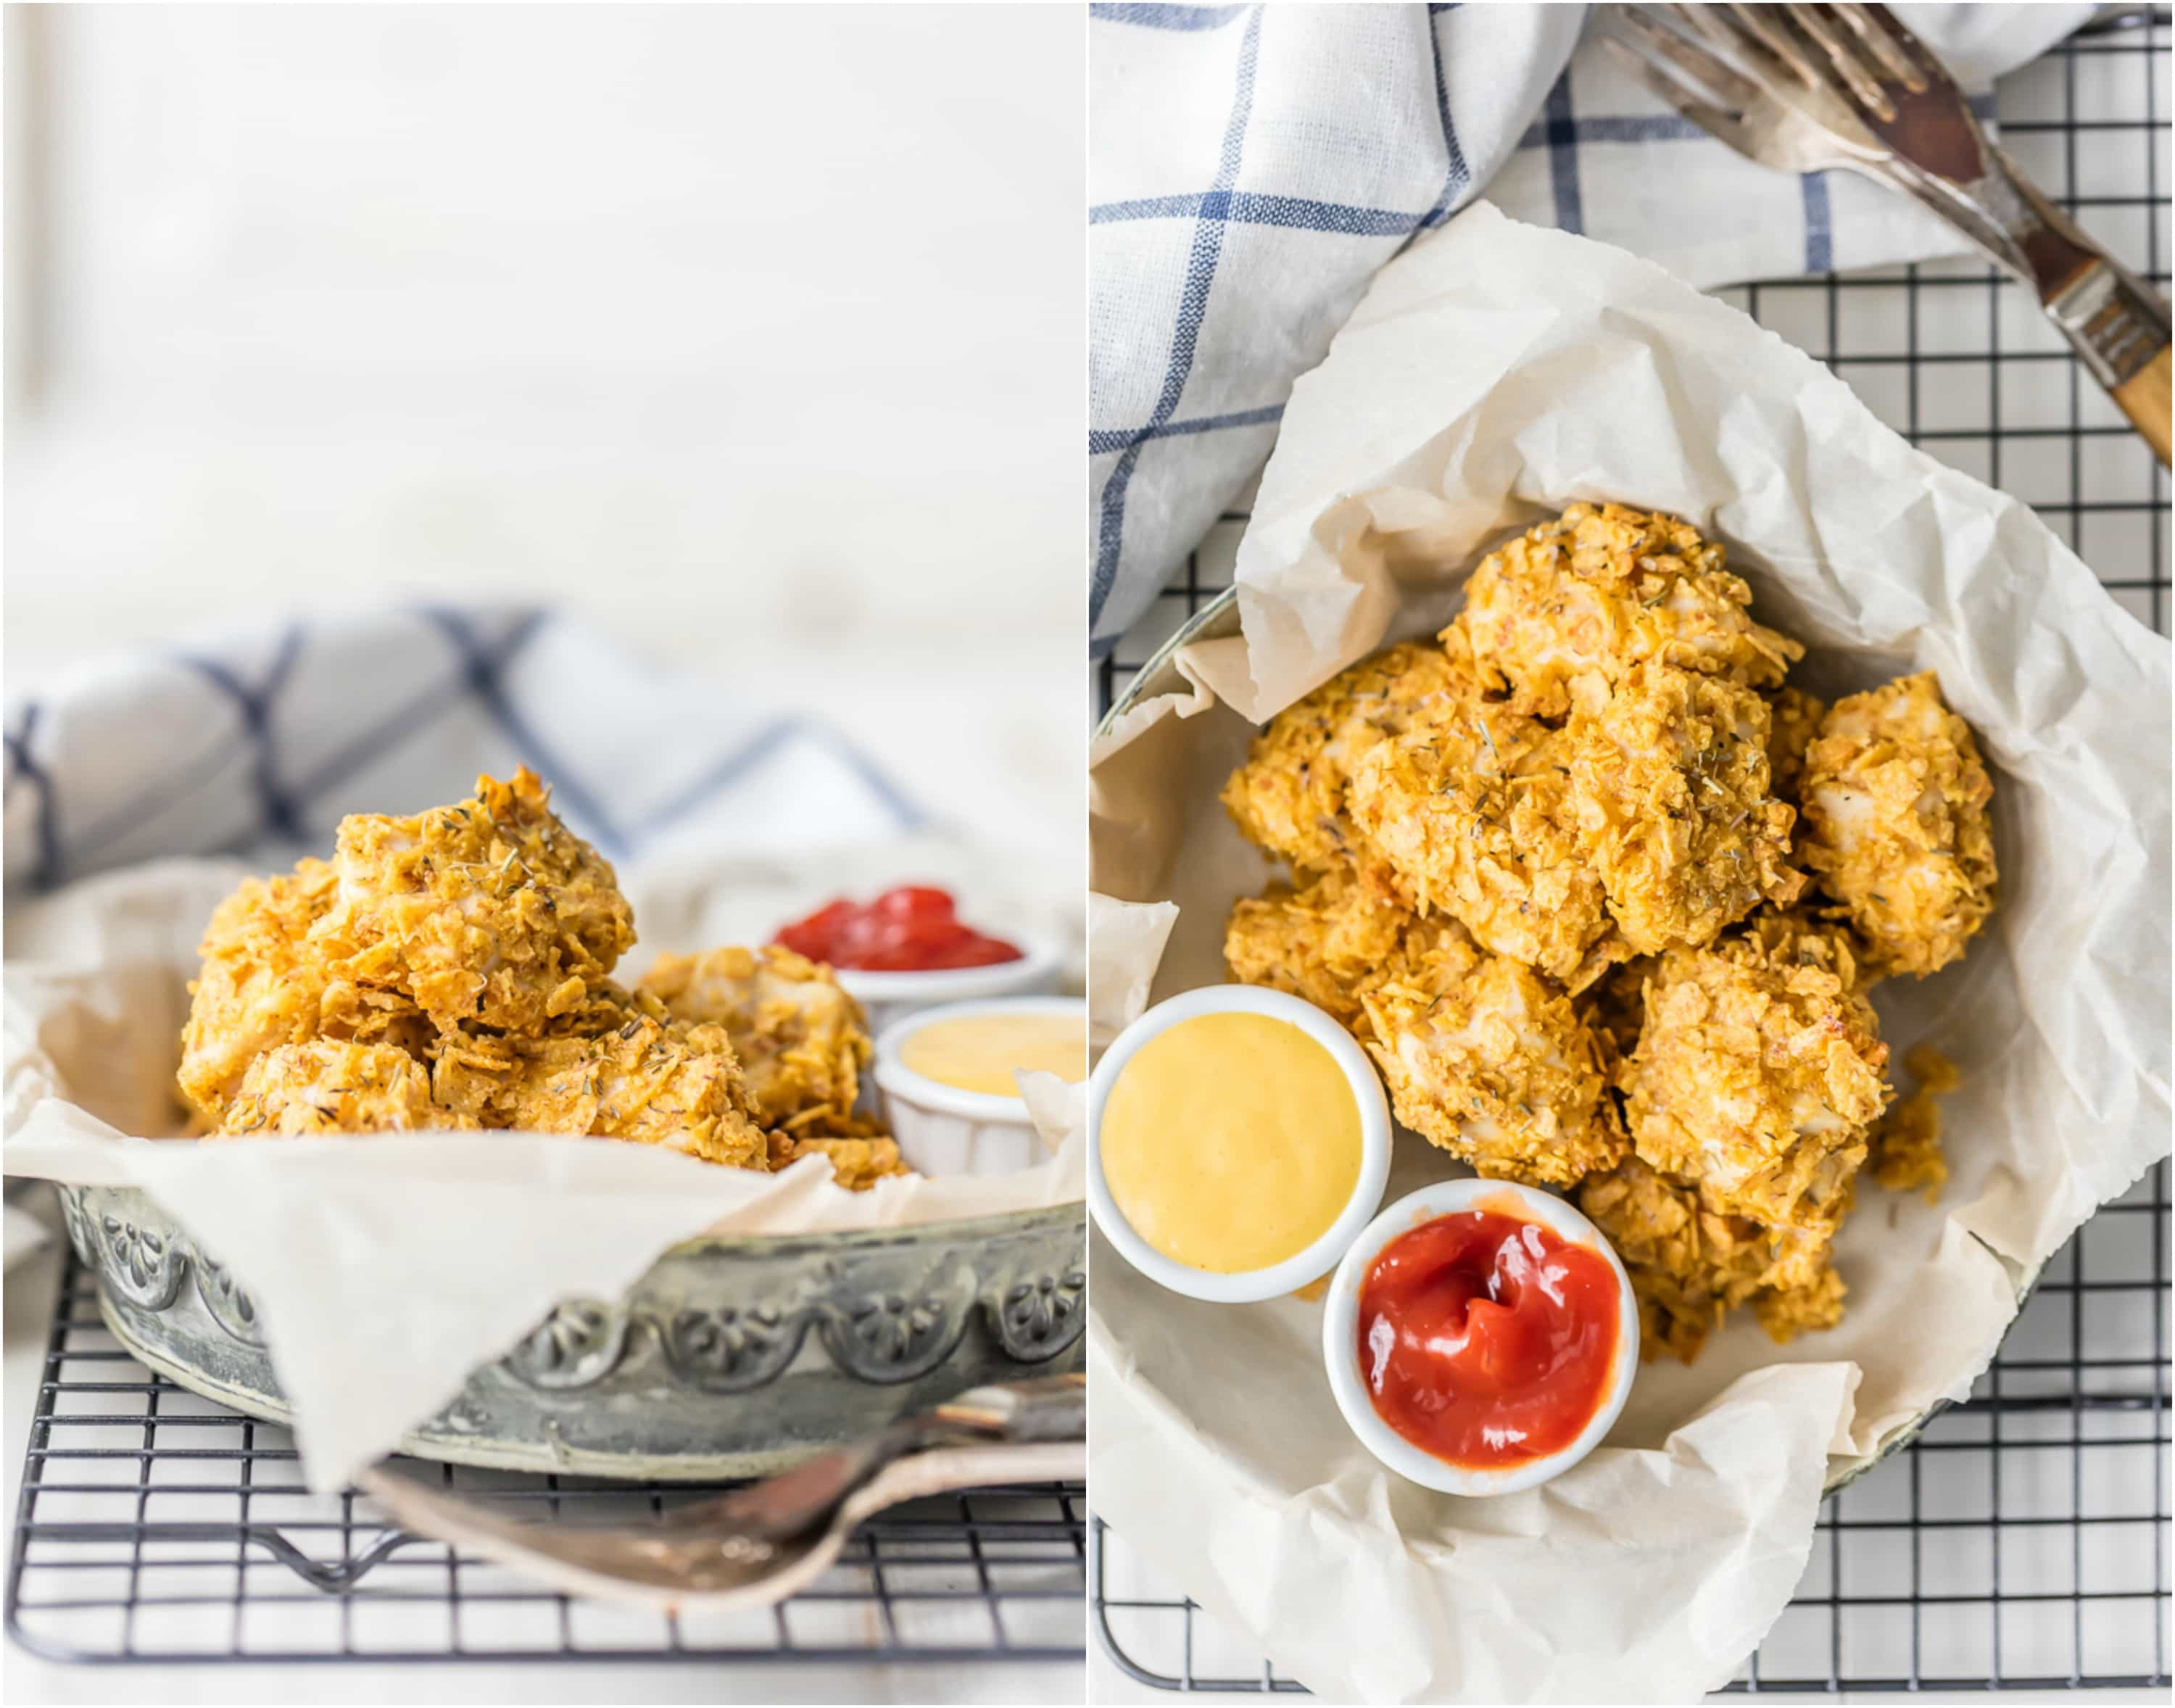 FREEZER FRIENDLY FRENCH ONION CHICKEN NUGGETS! Baked in the oven to make skinny chicken nuggets, crispy from the sunchip coating. BEST EVER! Great for both kids and adults. Make now, freeze, and eat later!